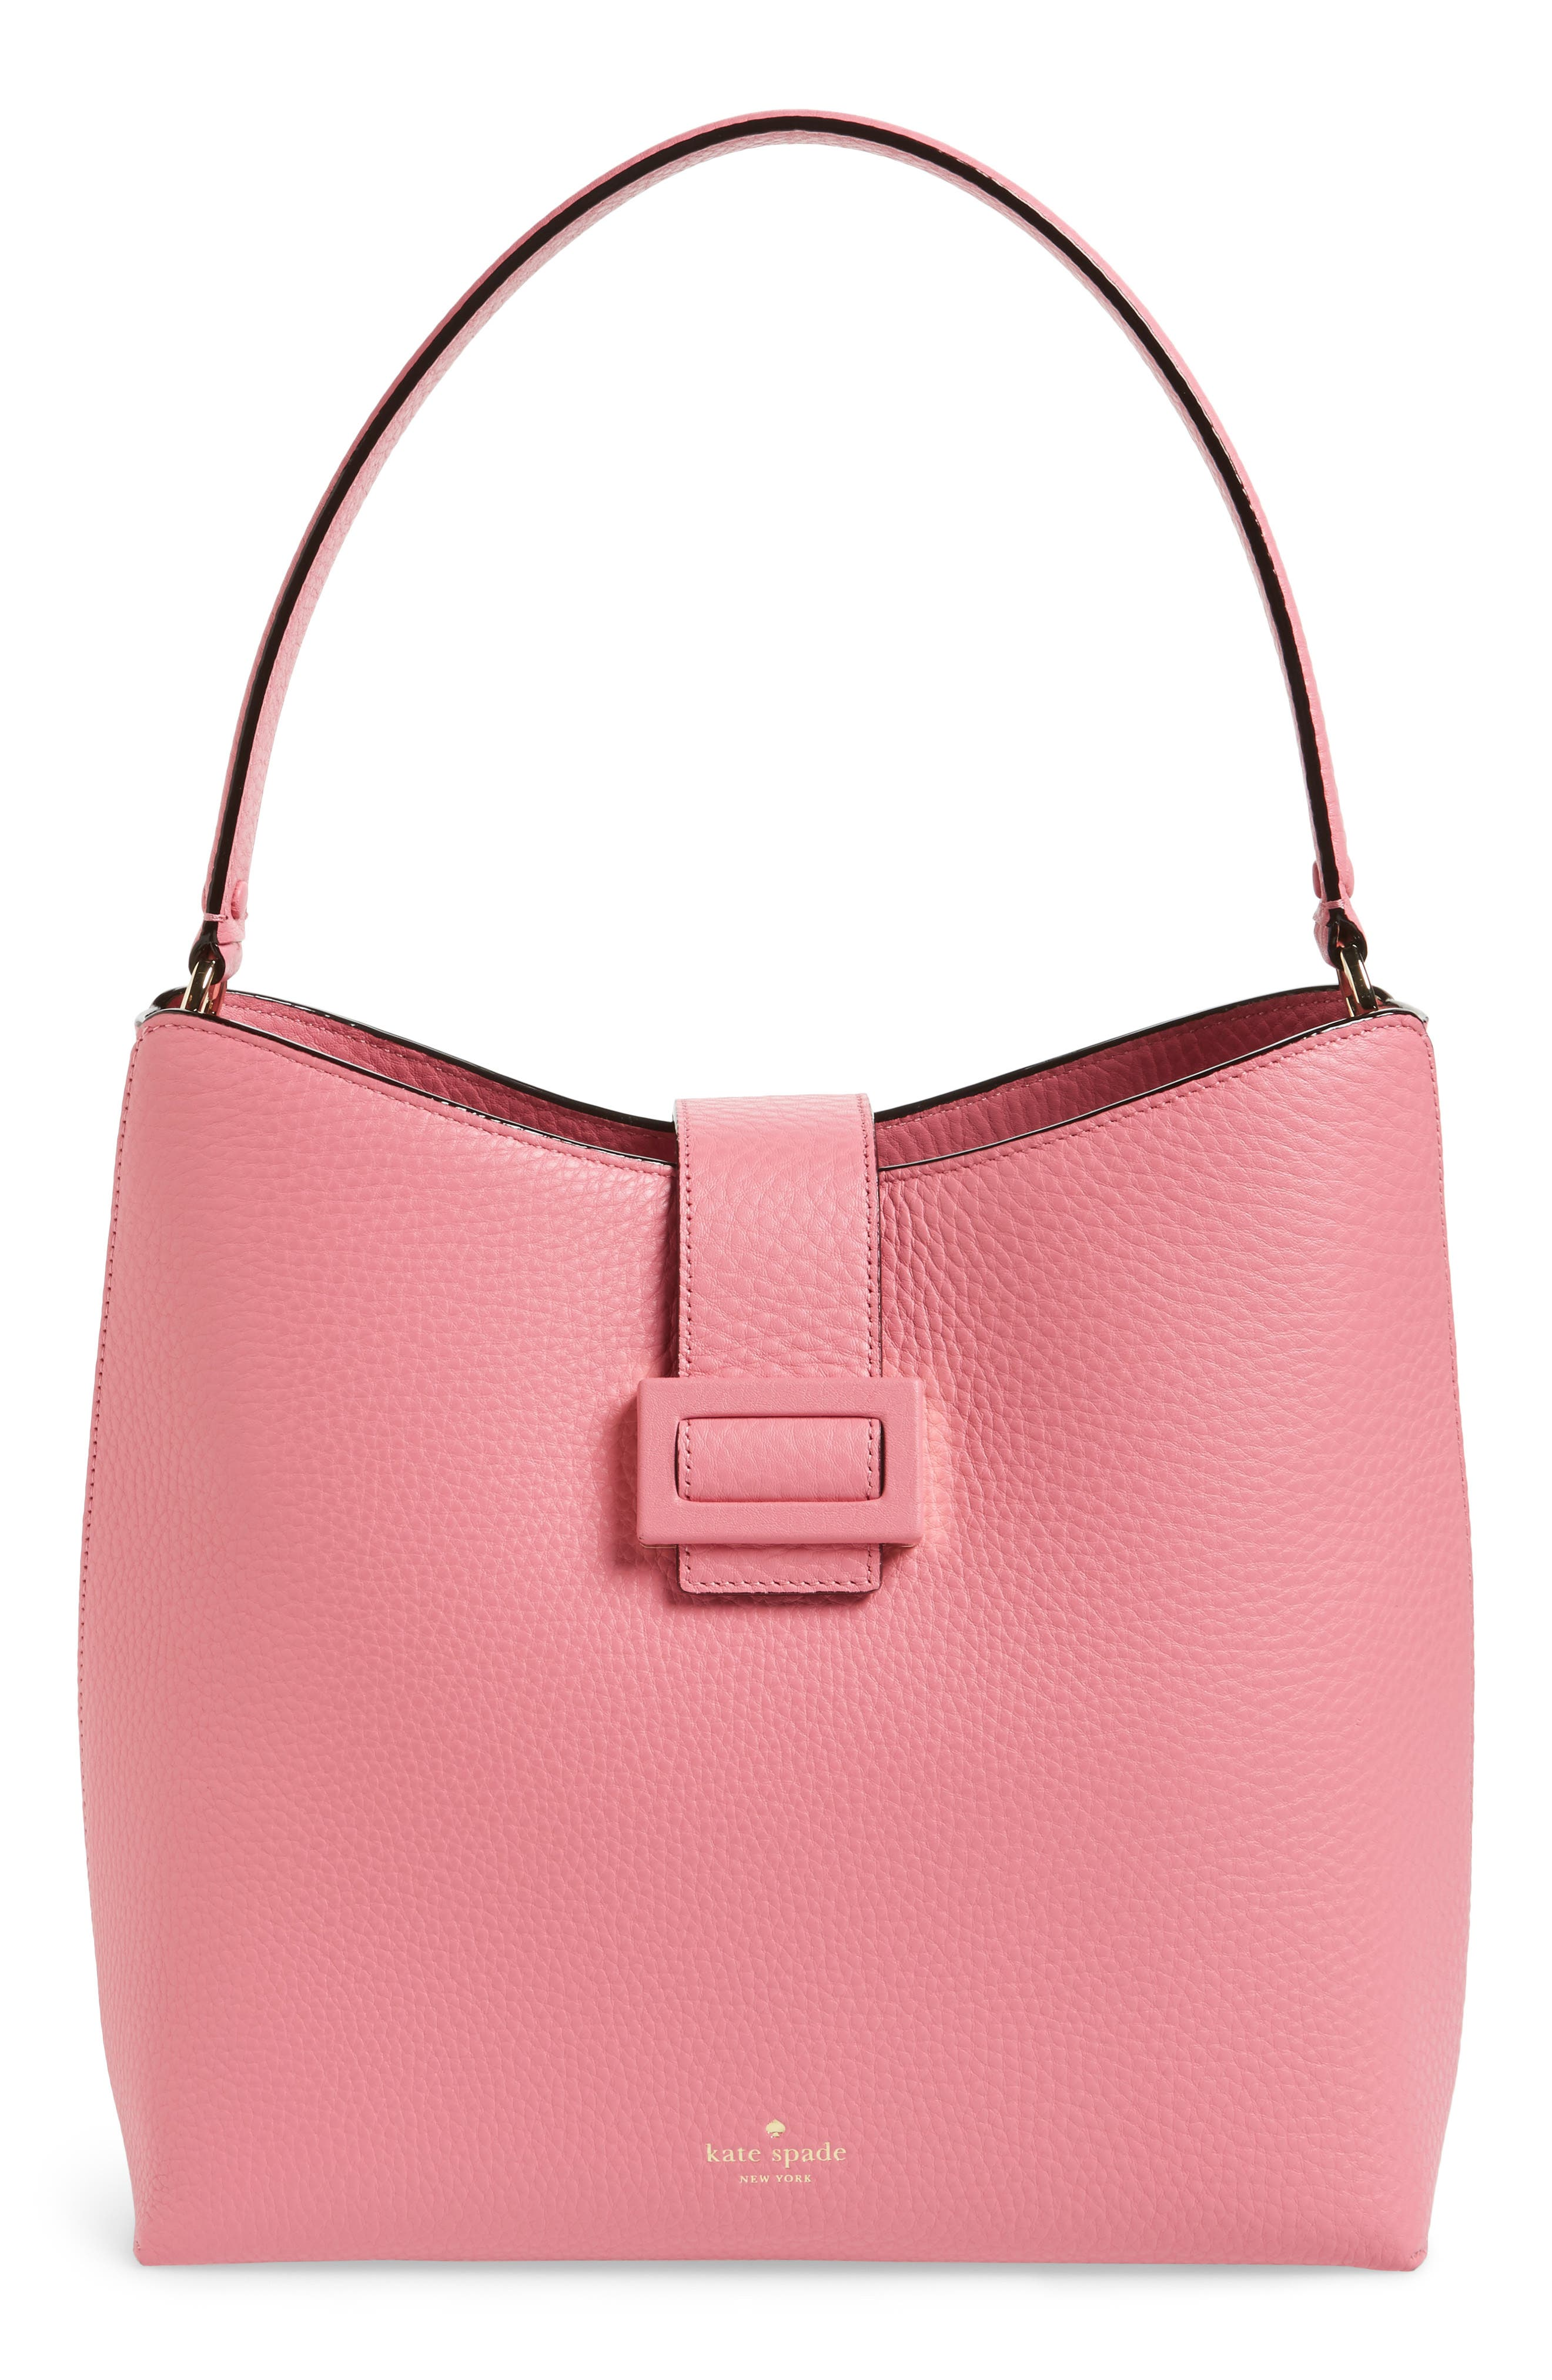 Alternate Image 1 Selected - kate spade new york carlyle street – marea leather hobo